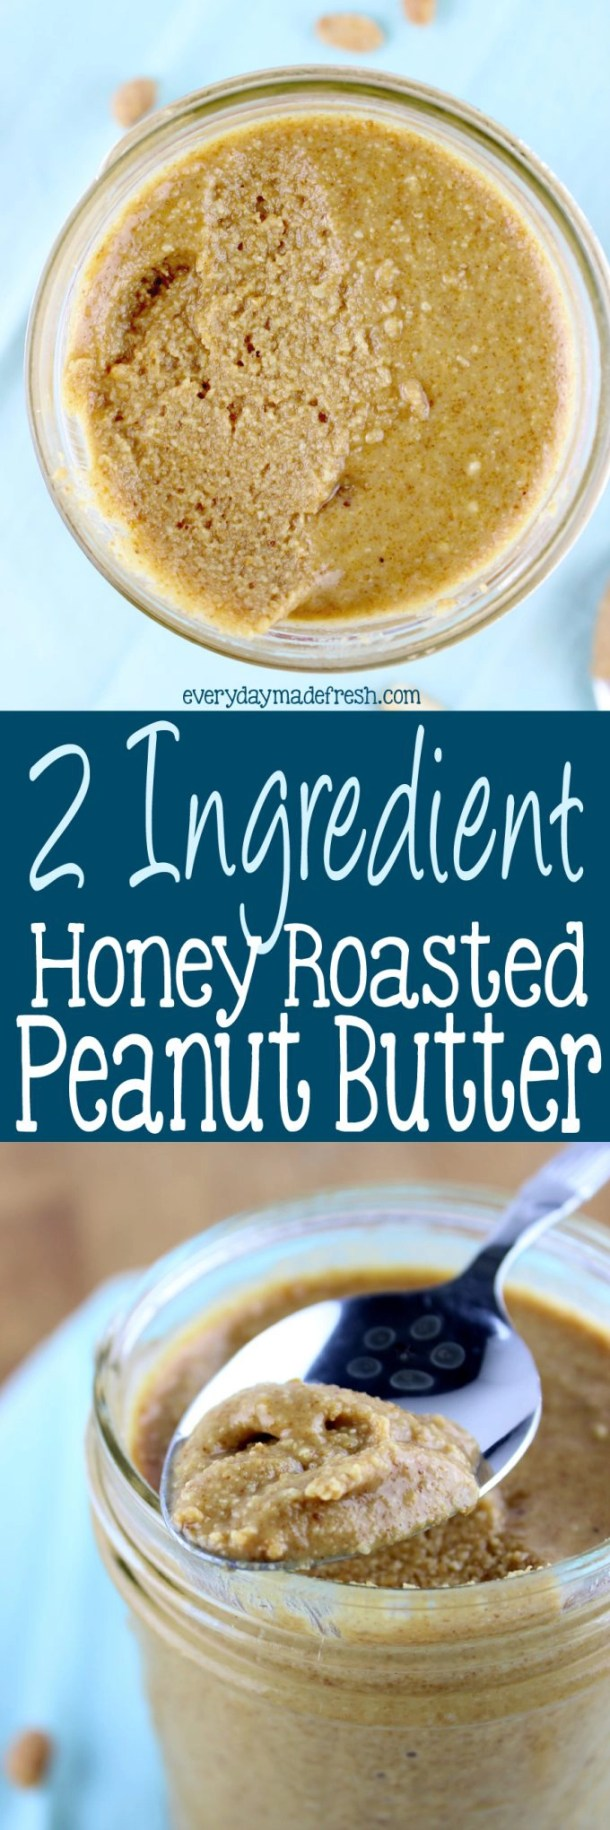 Sure you could buy peanut butter, but this, THIS is so much better! You are only minutes away from this 2 Ingredient Honey Roasted Peanut Butter! You'll never go back to buying it. | EverydayMadeFresh.com